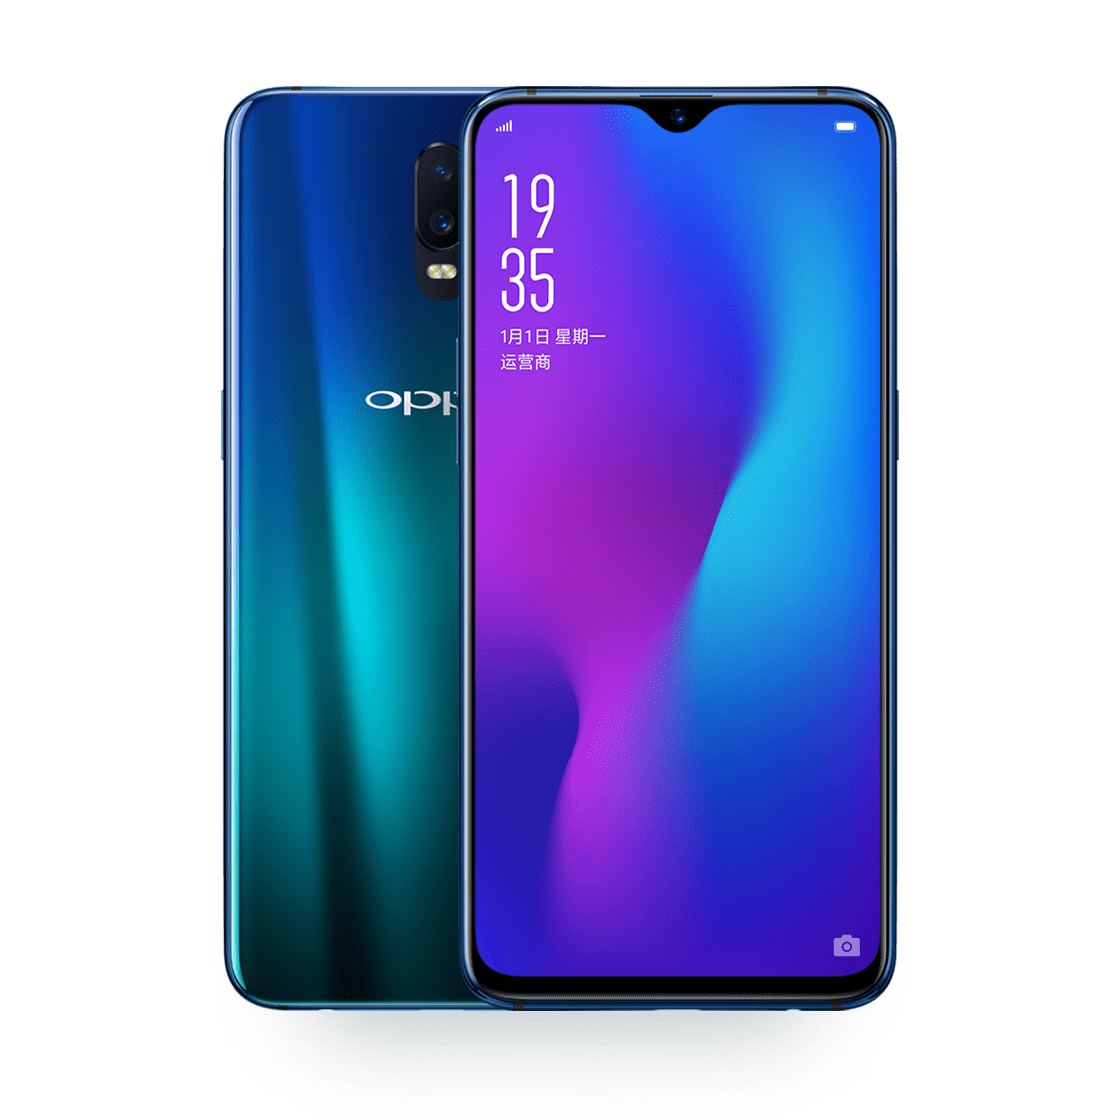 OPPO R17 Design & Specifications Confirmed By The Company